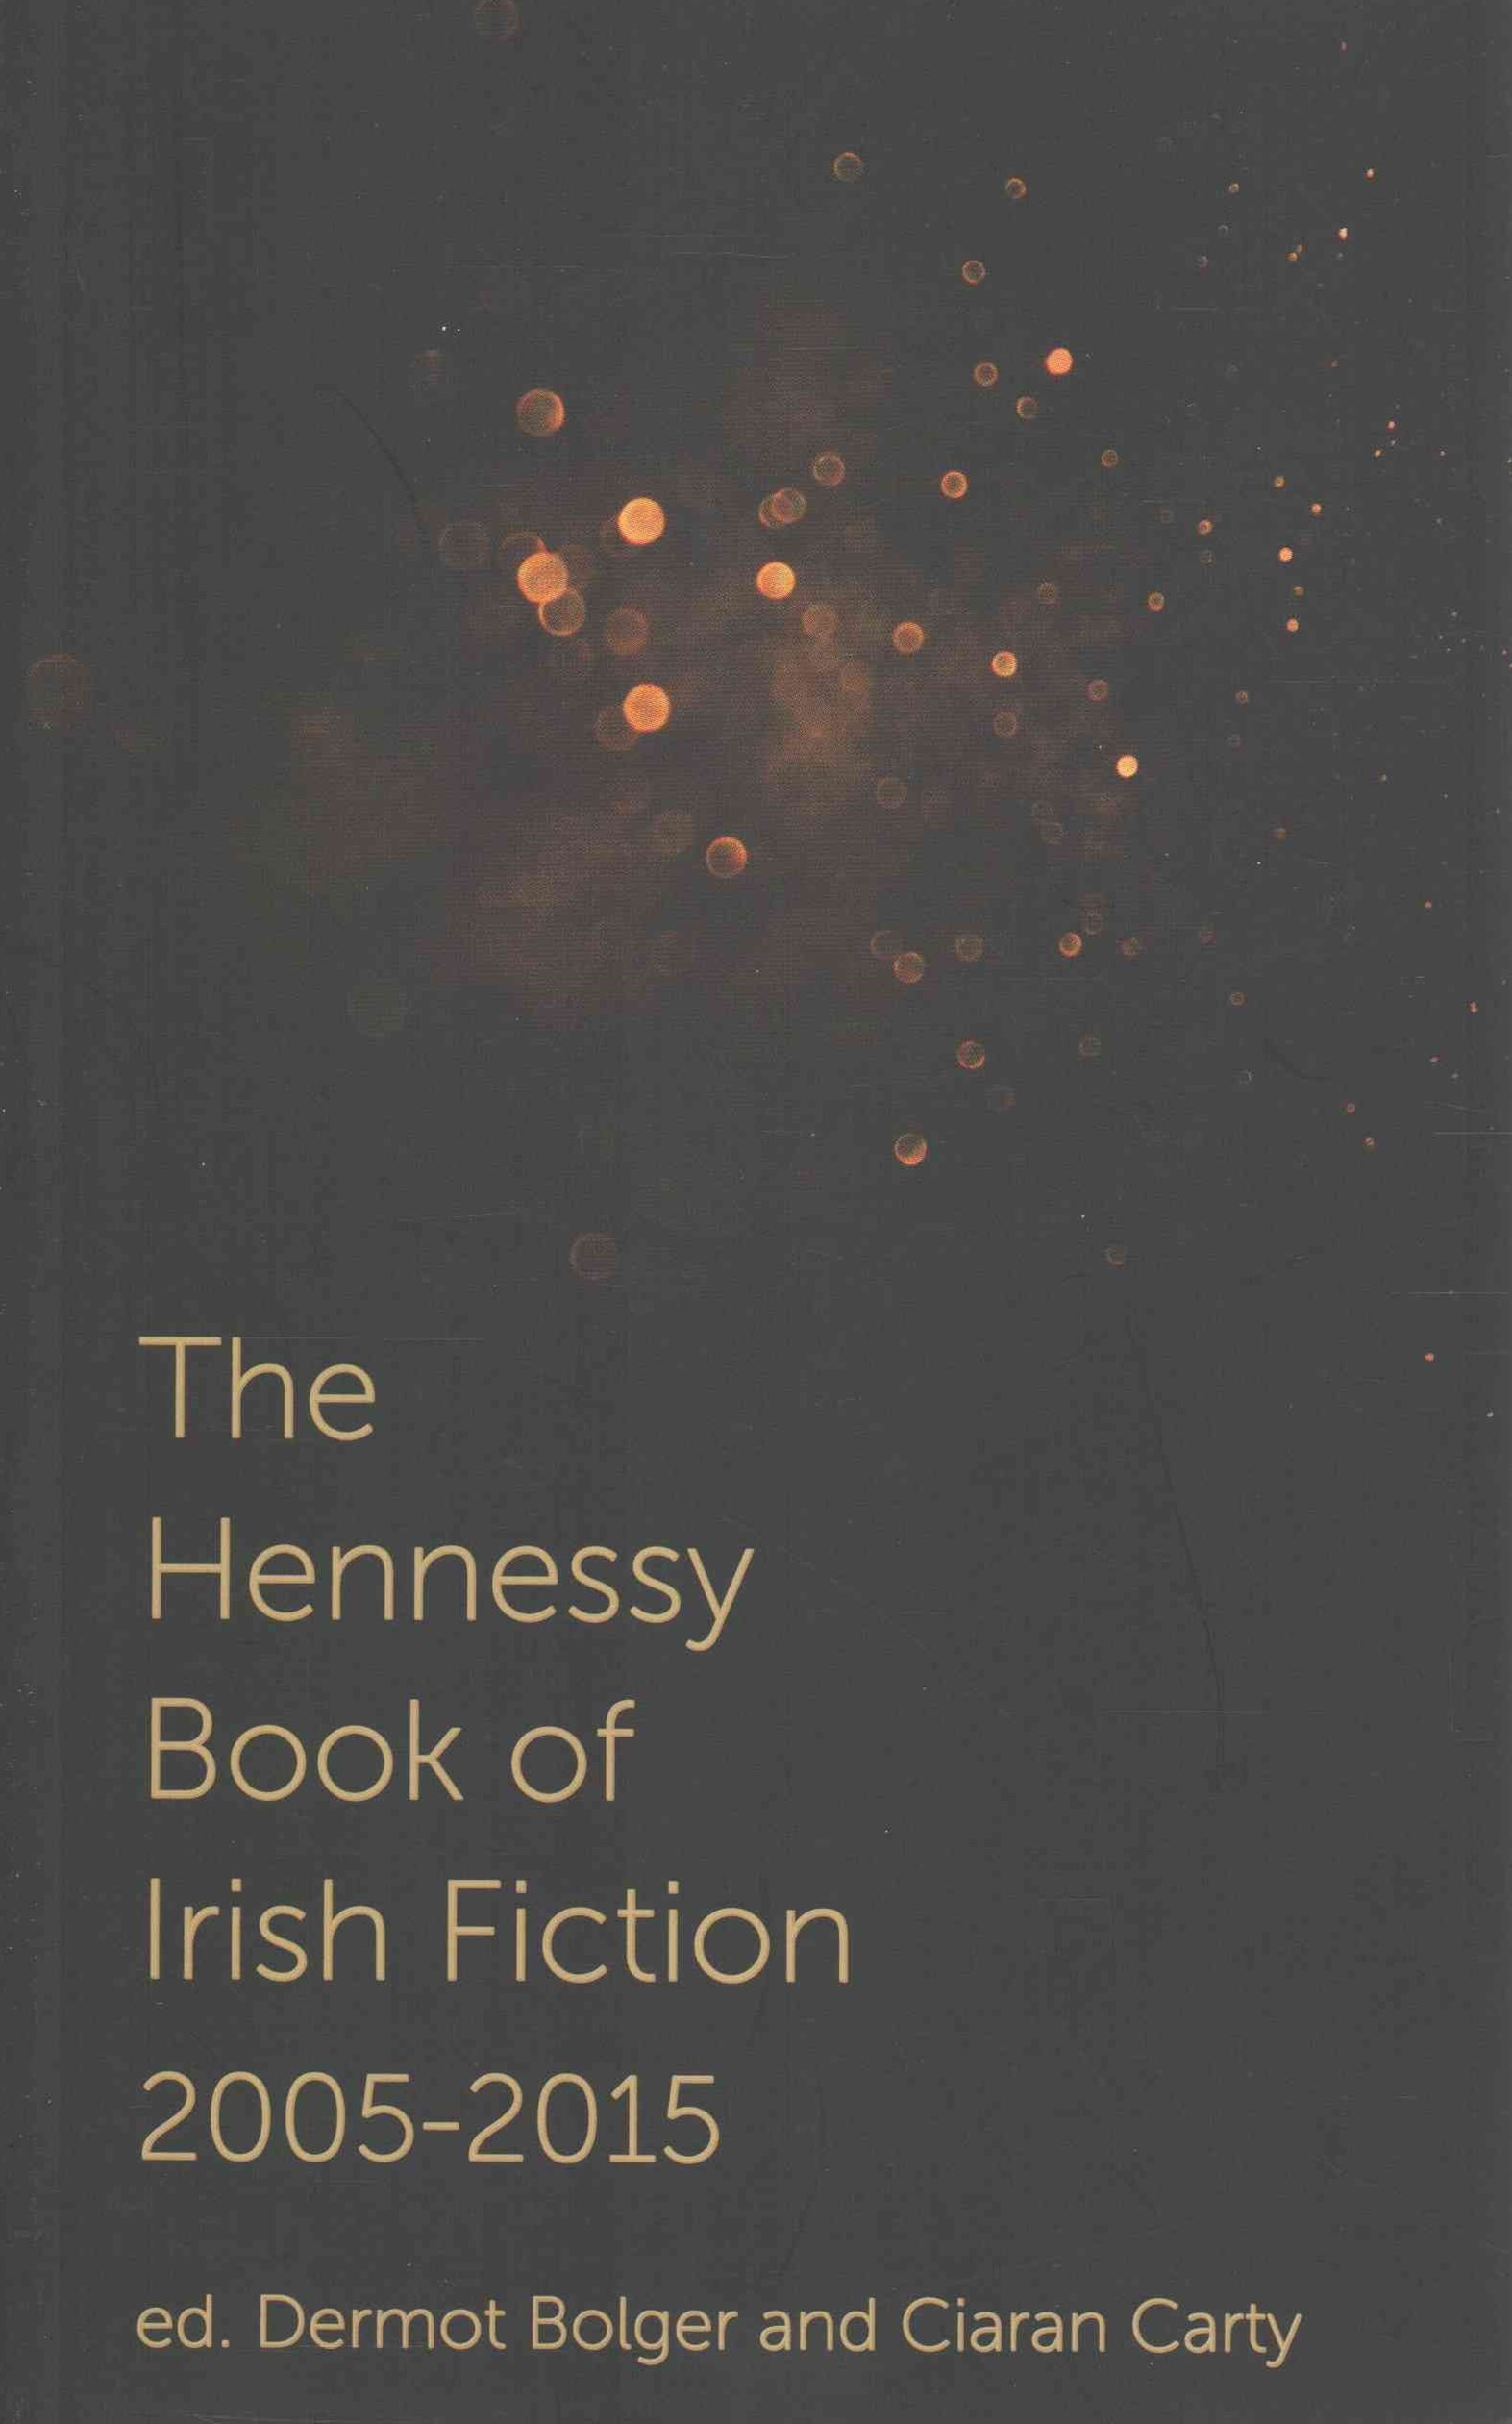 The Hennessy Book of Irish Fiction, 2005-2015